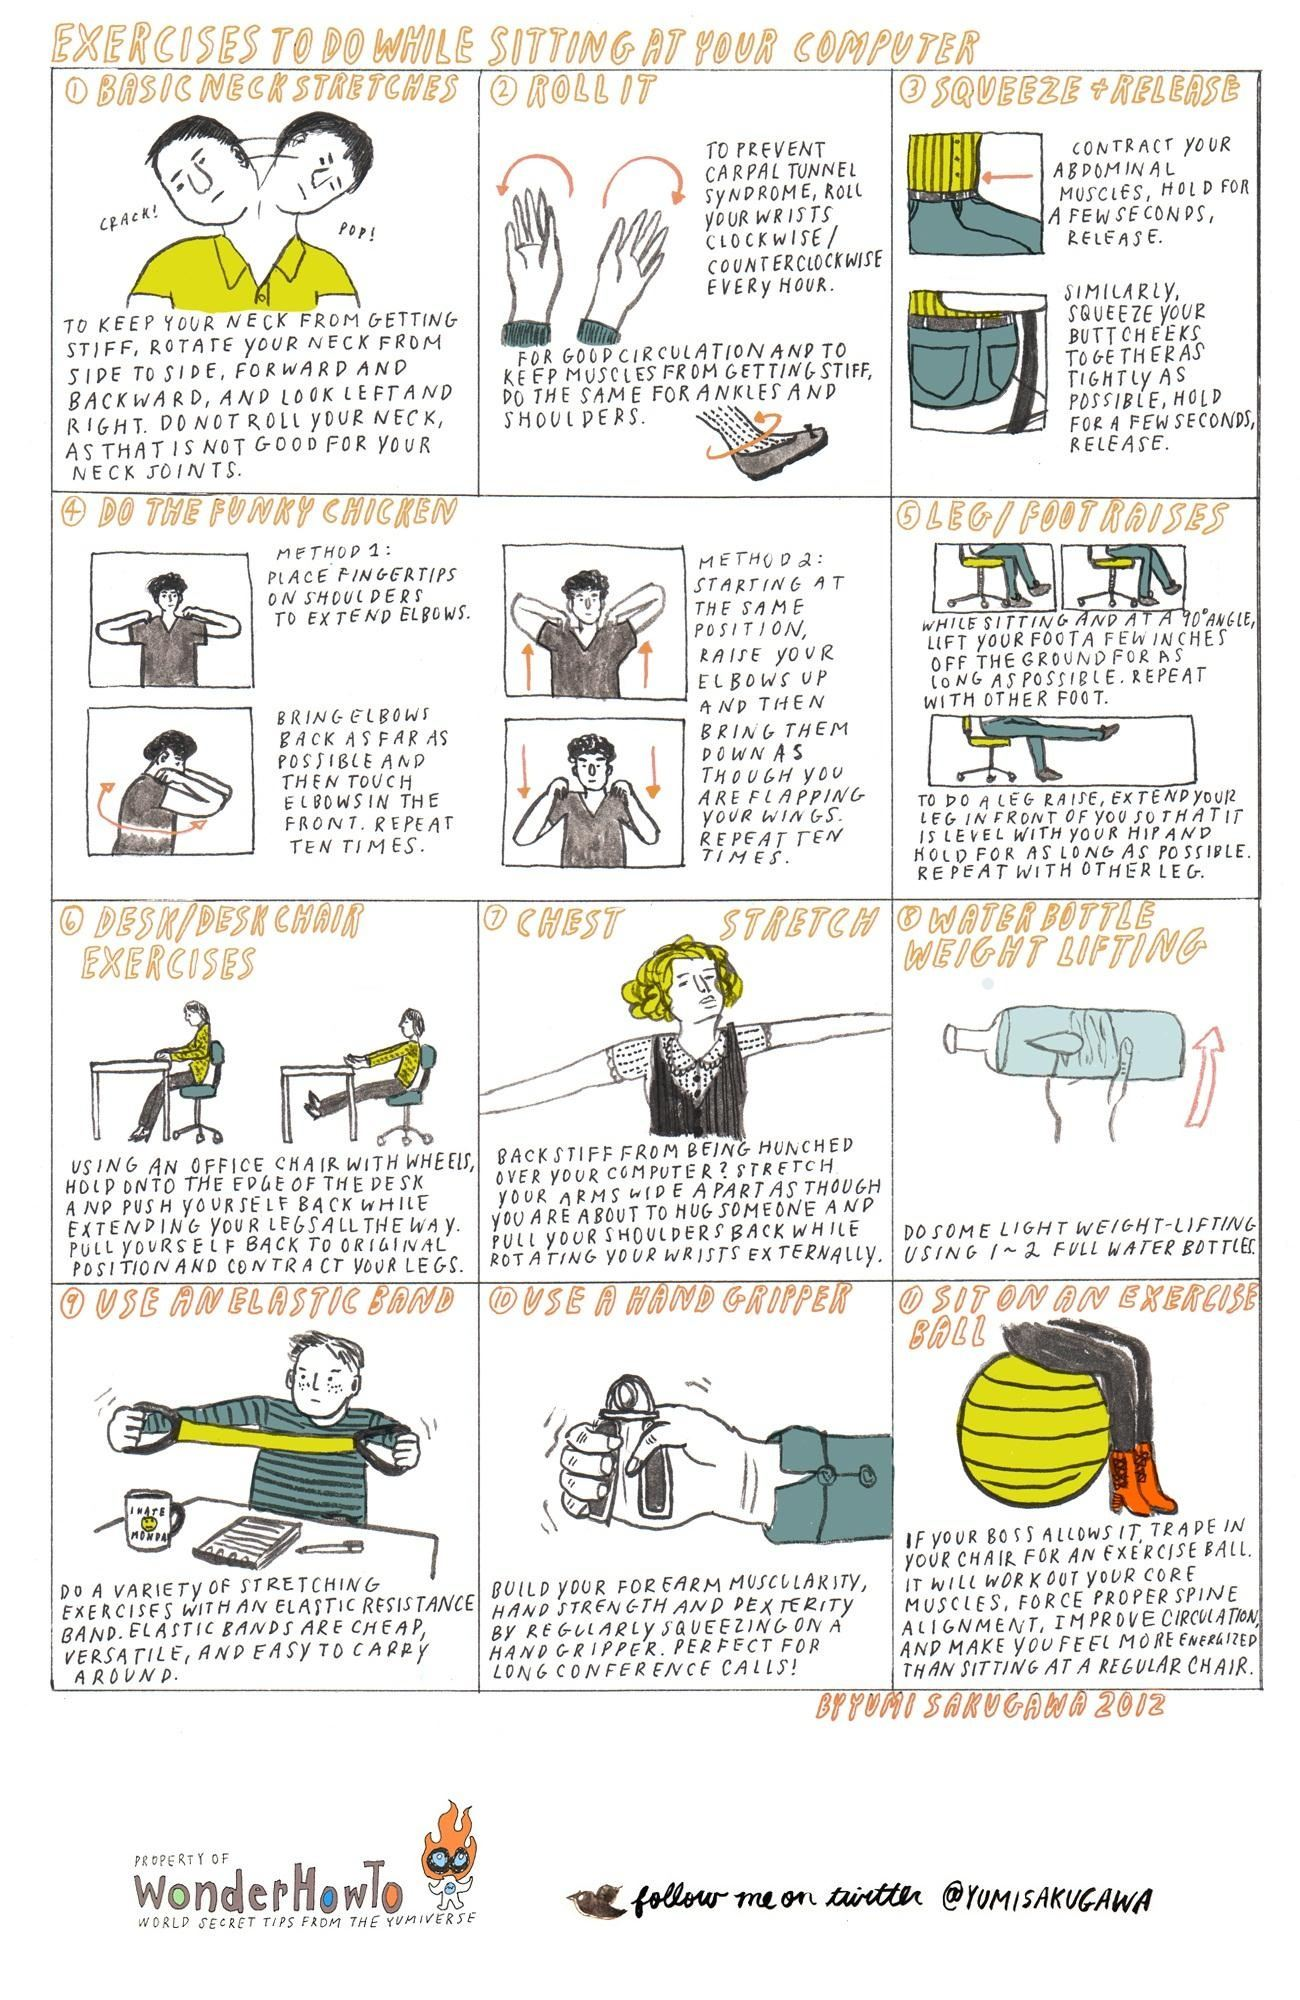 11 Exercises To Do While Sitting At Your Computer The Secret Yumiverse